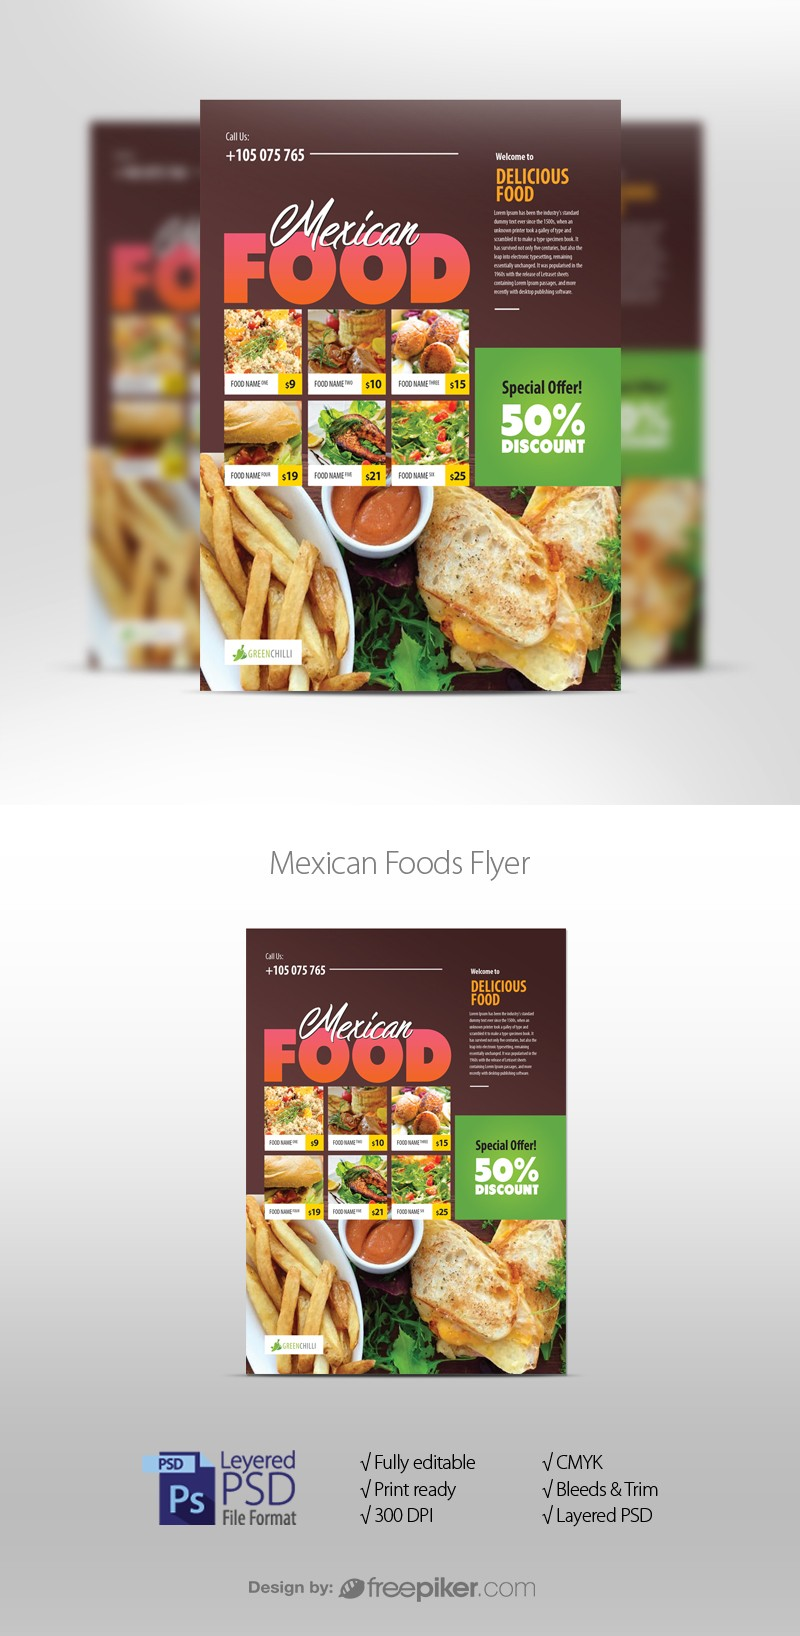 Mexican Foods Flyer